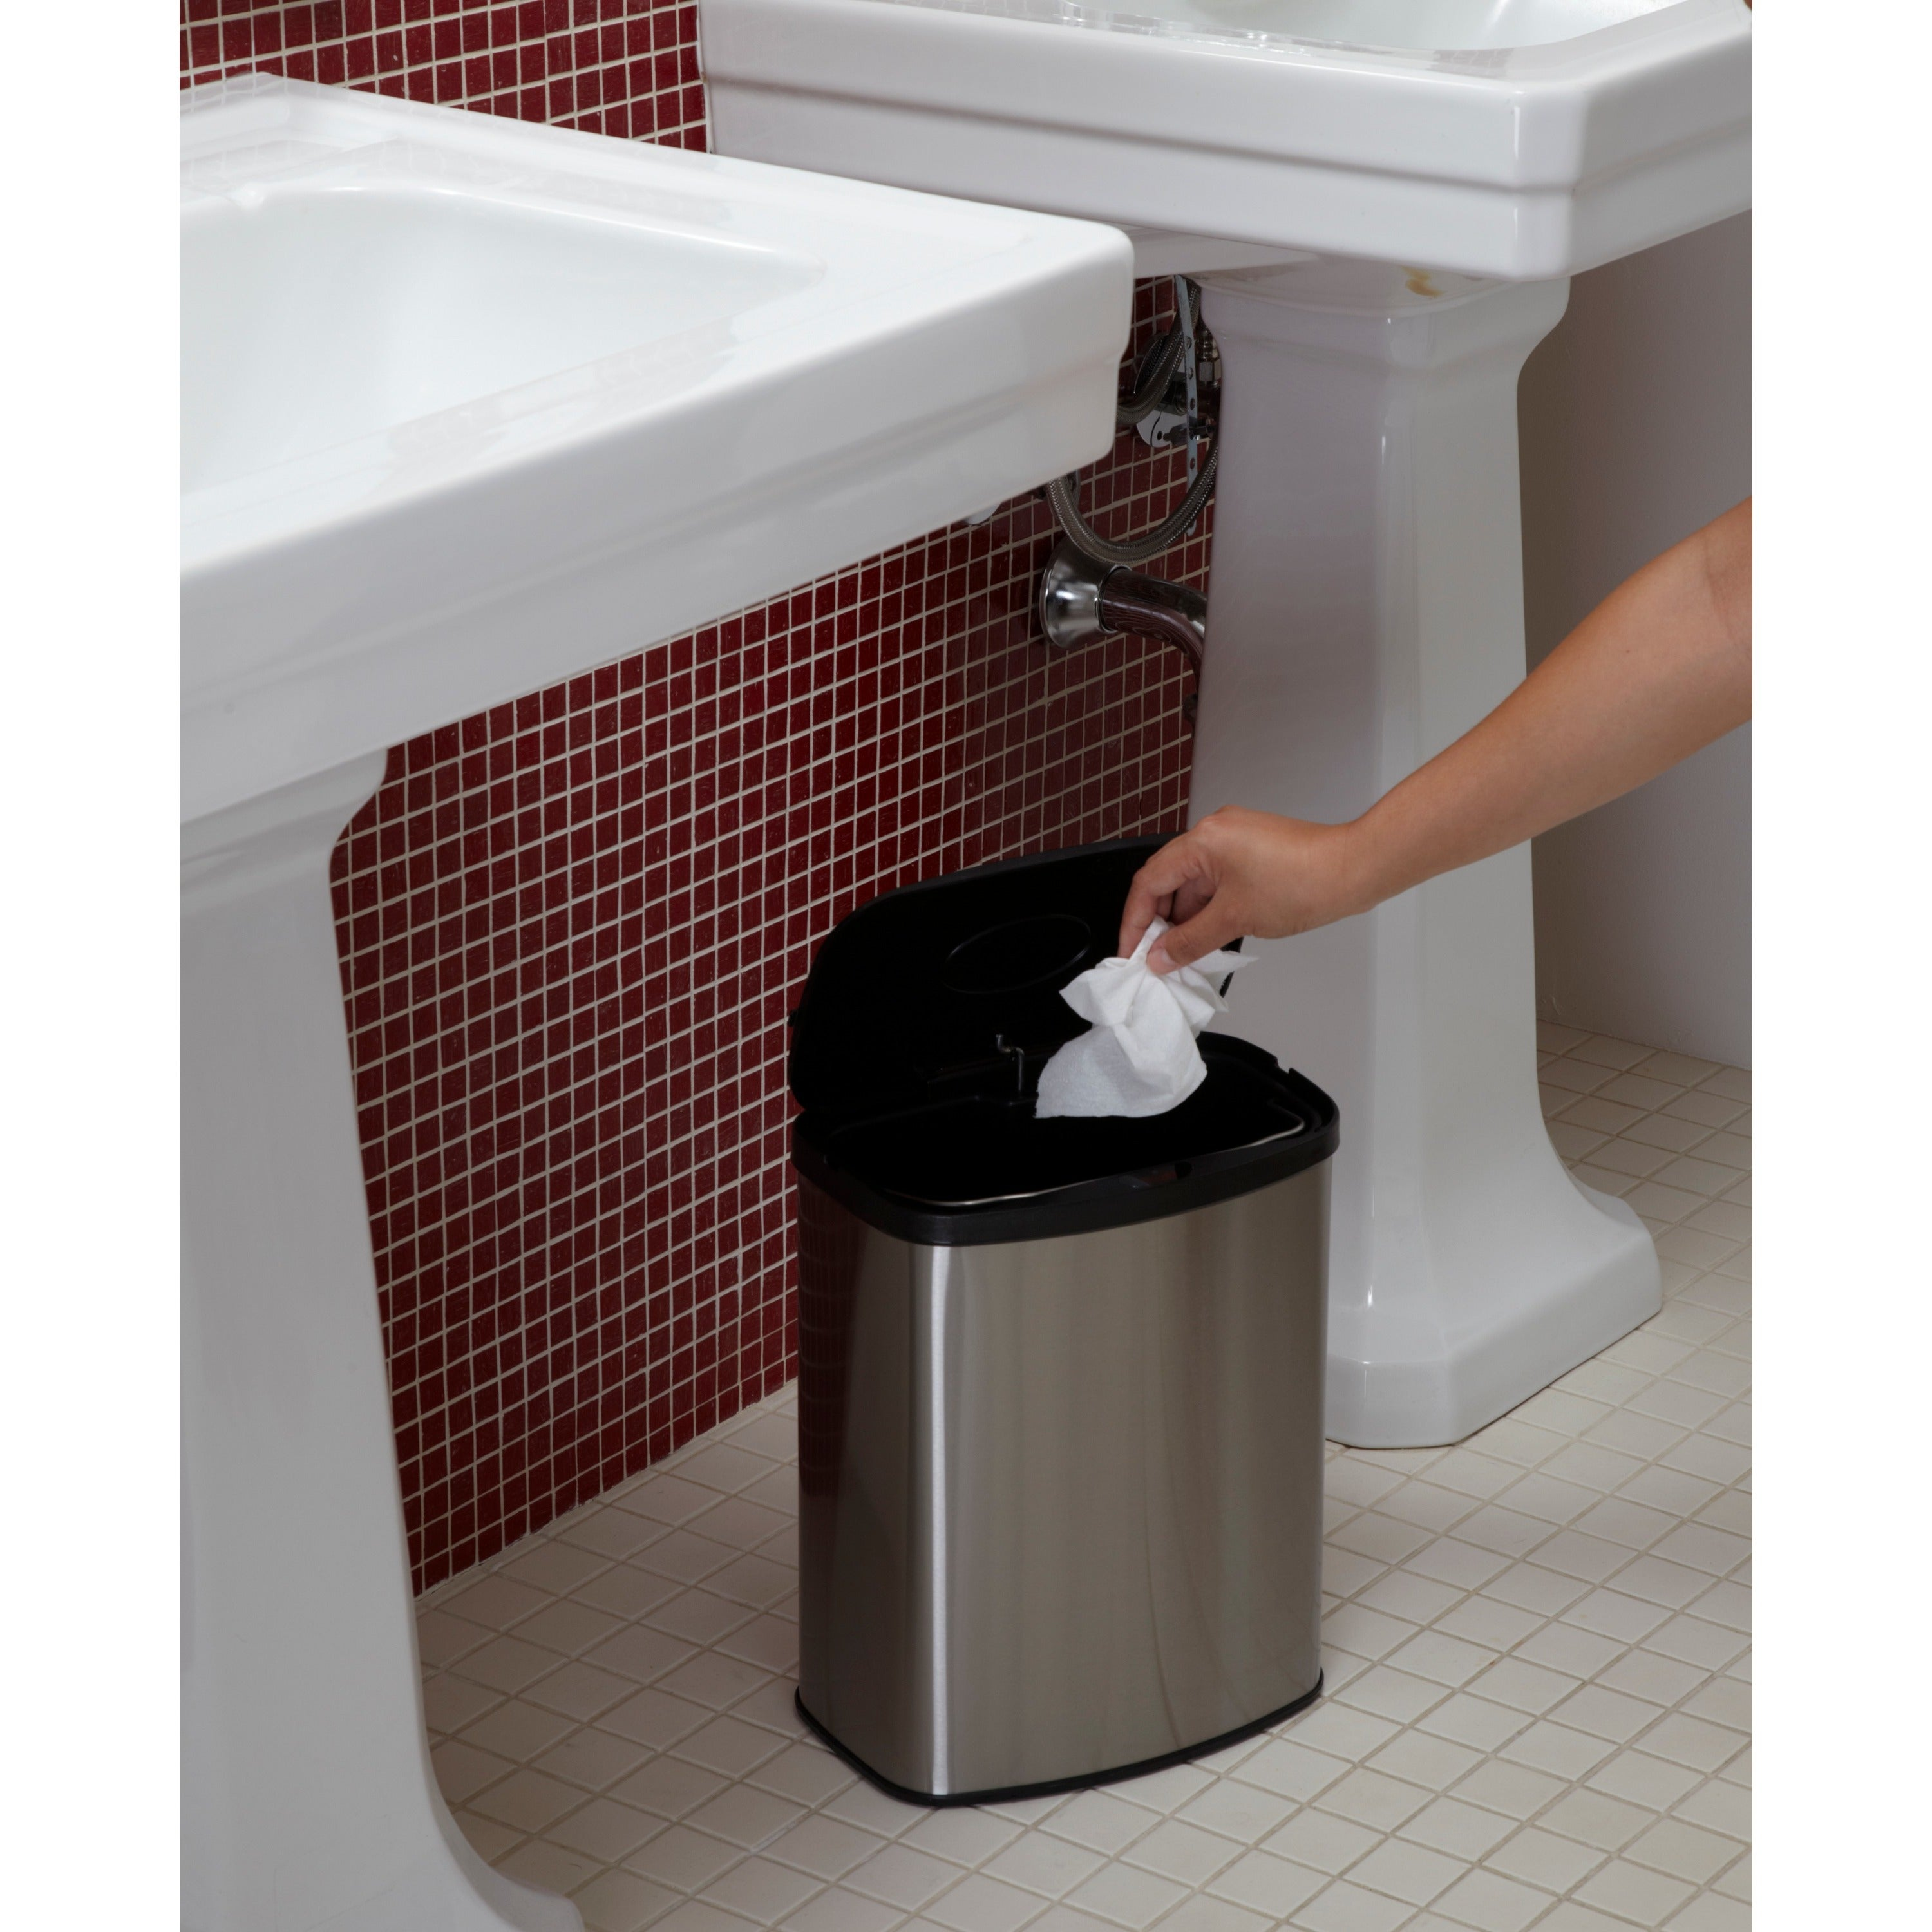 Motion Sensor Stainless Steel 2 In 1 Combo Bathroom/ Kitchen Trash Can Set    Free Shipping Today   Overstock   12219537